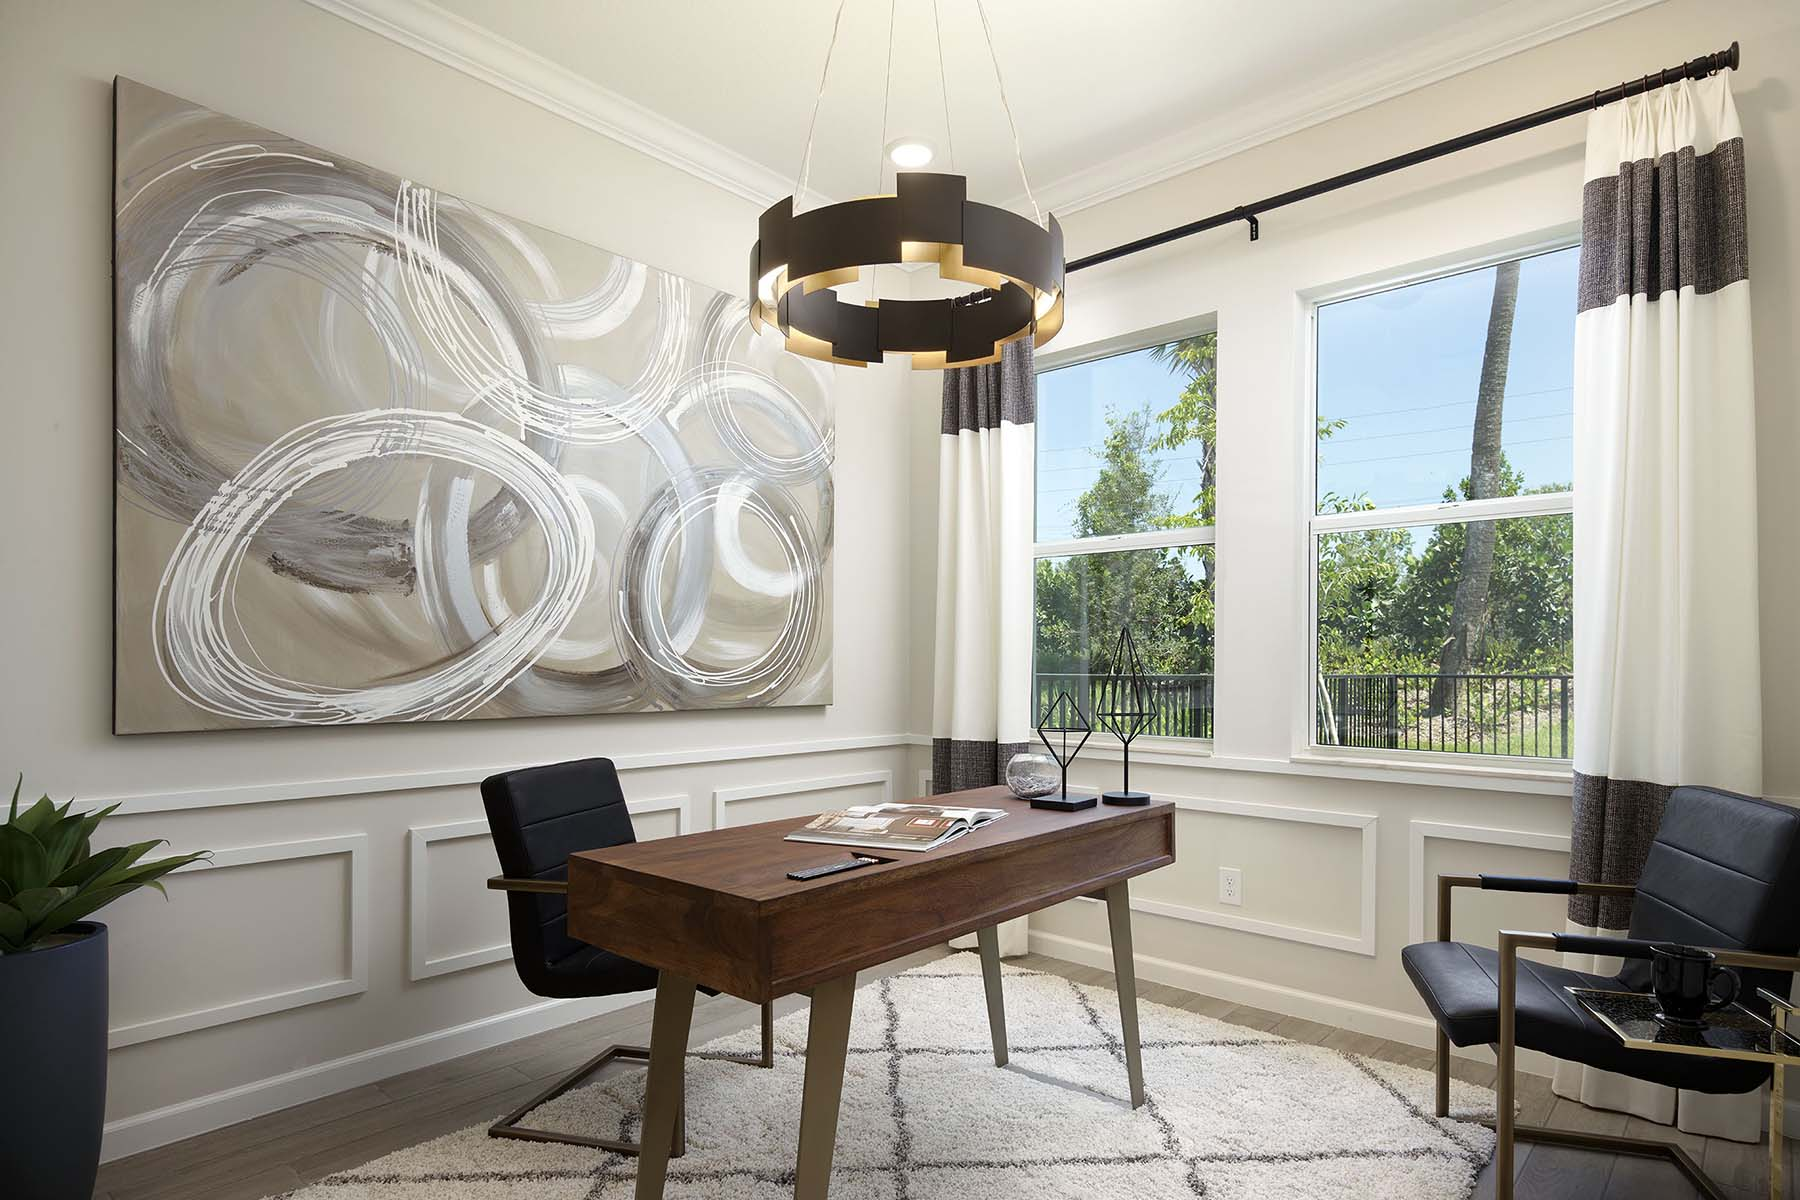 Sabal Plan Study Room at Solcera in West Palm Beach Florida by Mattamy Homes